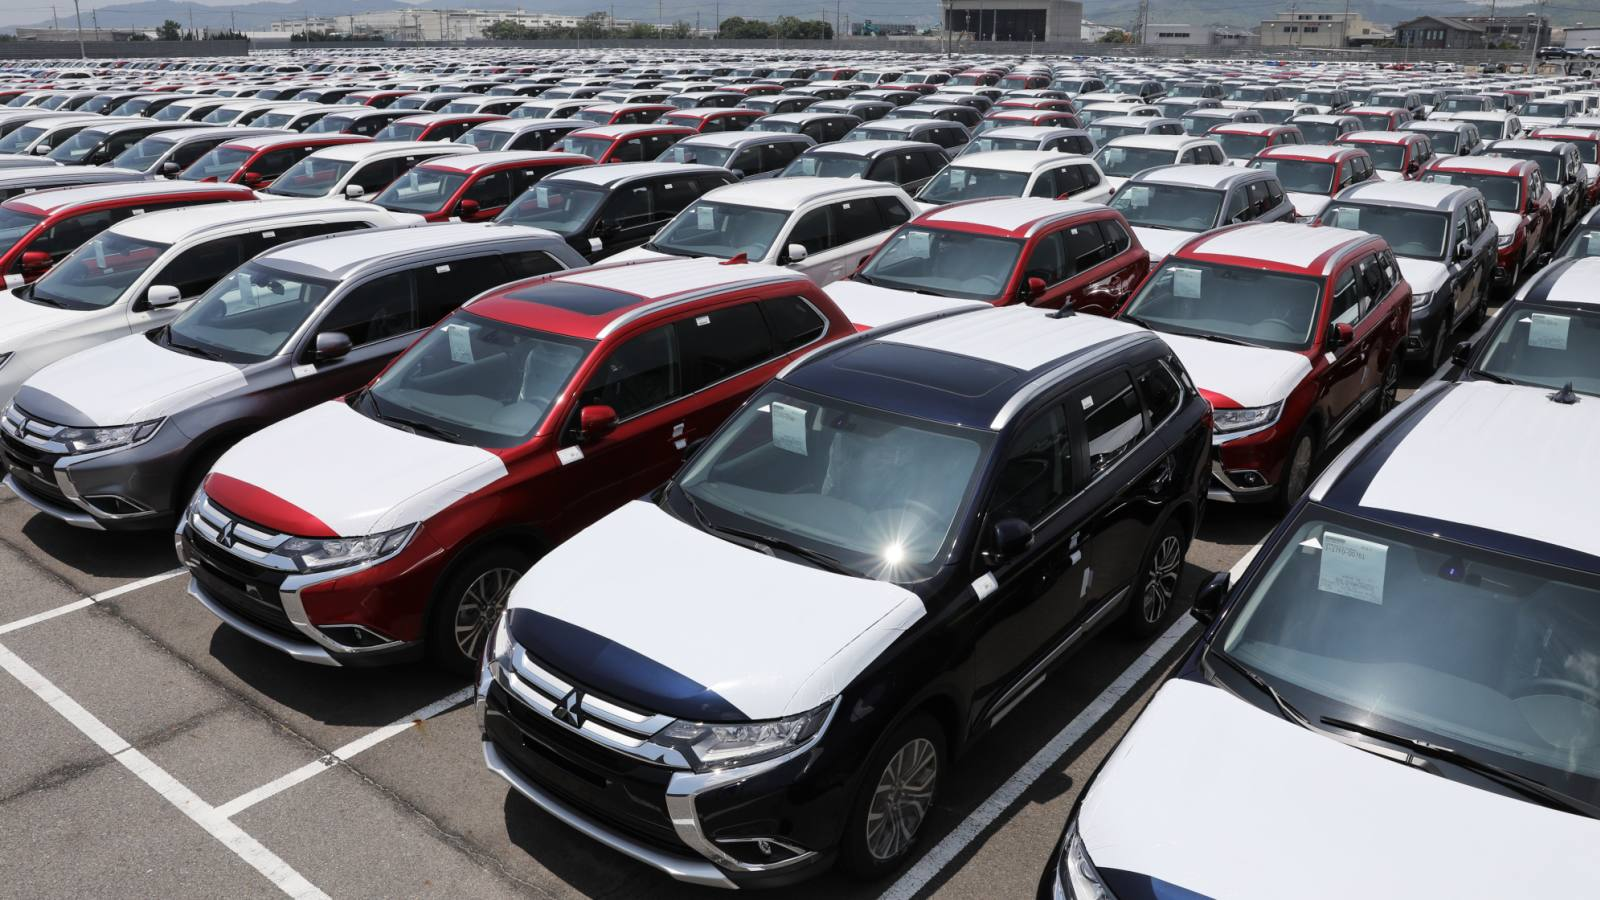 trump car tariff threat sends japan on search for escape route nikkei asian review. Black Bedroom Furniture Sets. Home Design Ideas